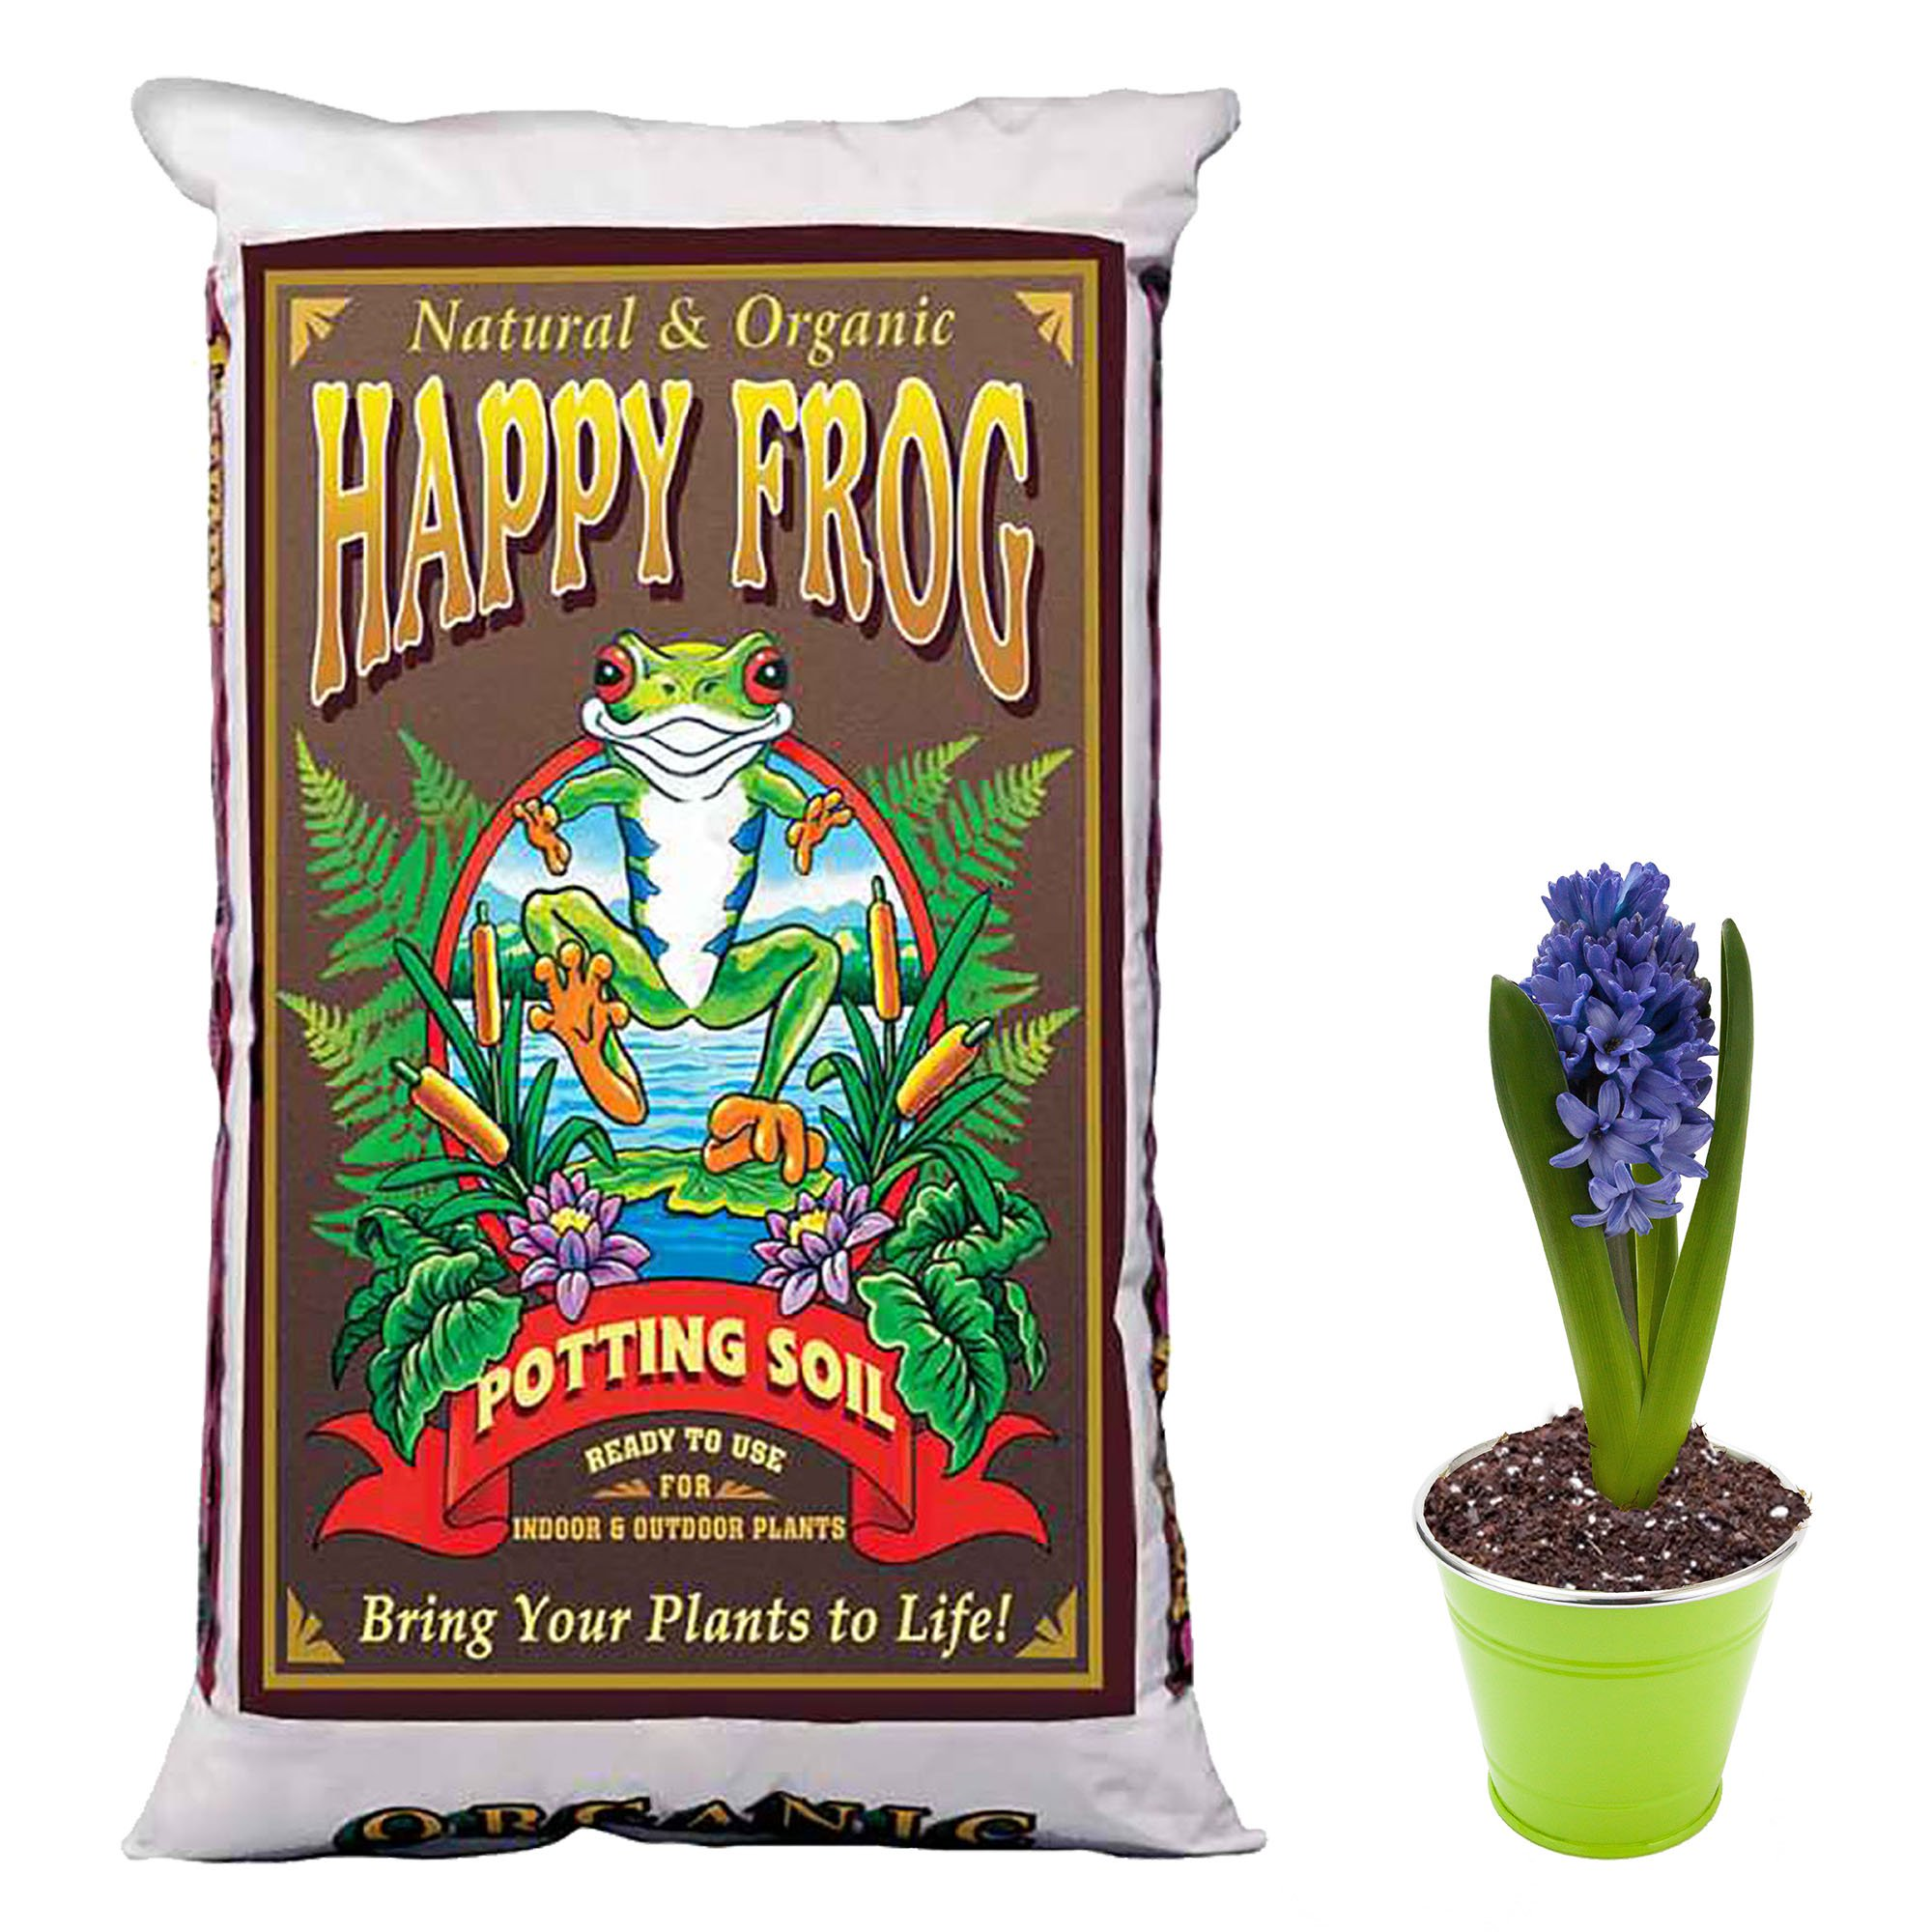 FoxFarm Happy Frog Nutrient Rich Rapid Growth Potting Soil, 4 Cu Feet | FX14081